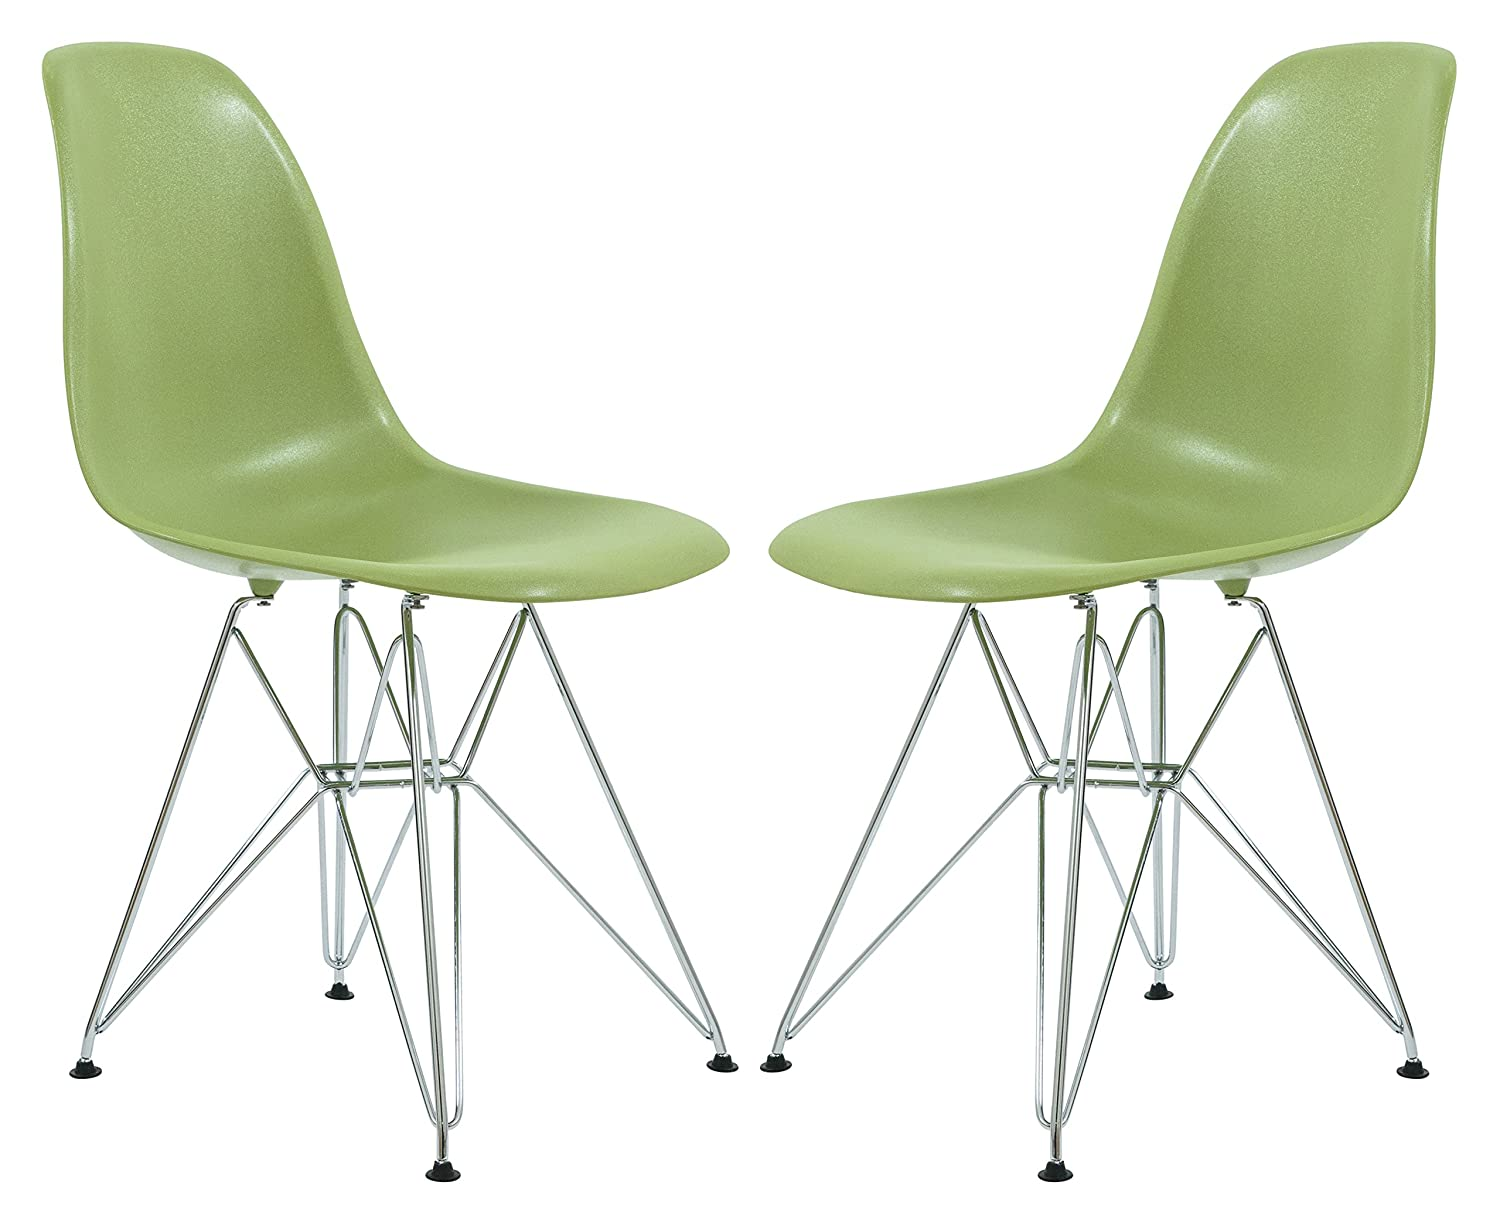 LeisureMod Cresco Molded Eiffel Base Modern Side Dining Chair in Solid Green, Set of 2